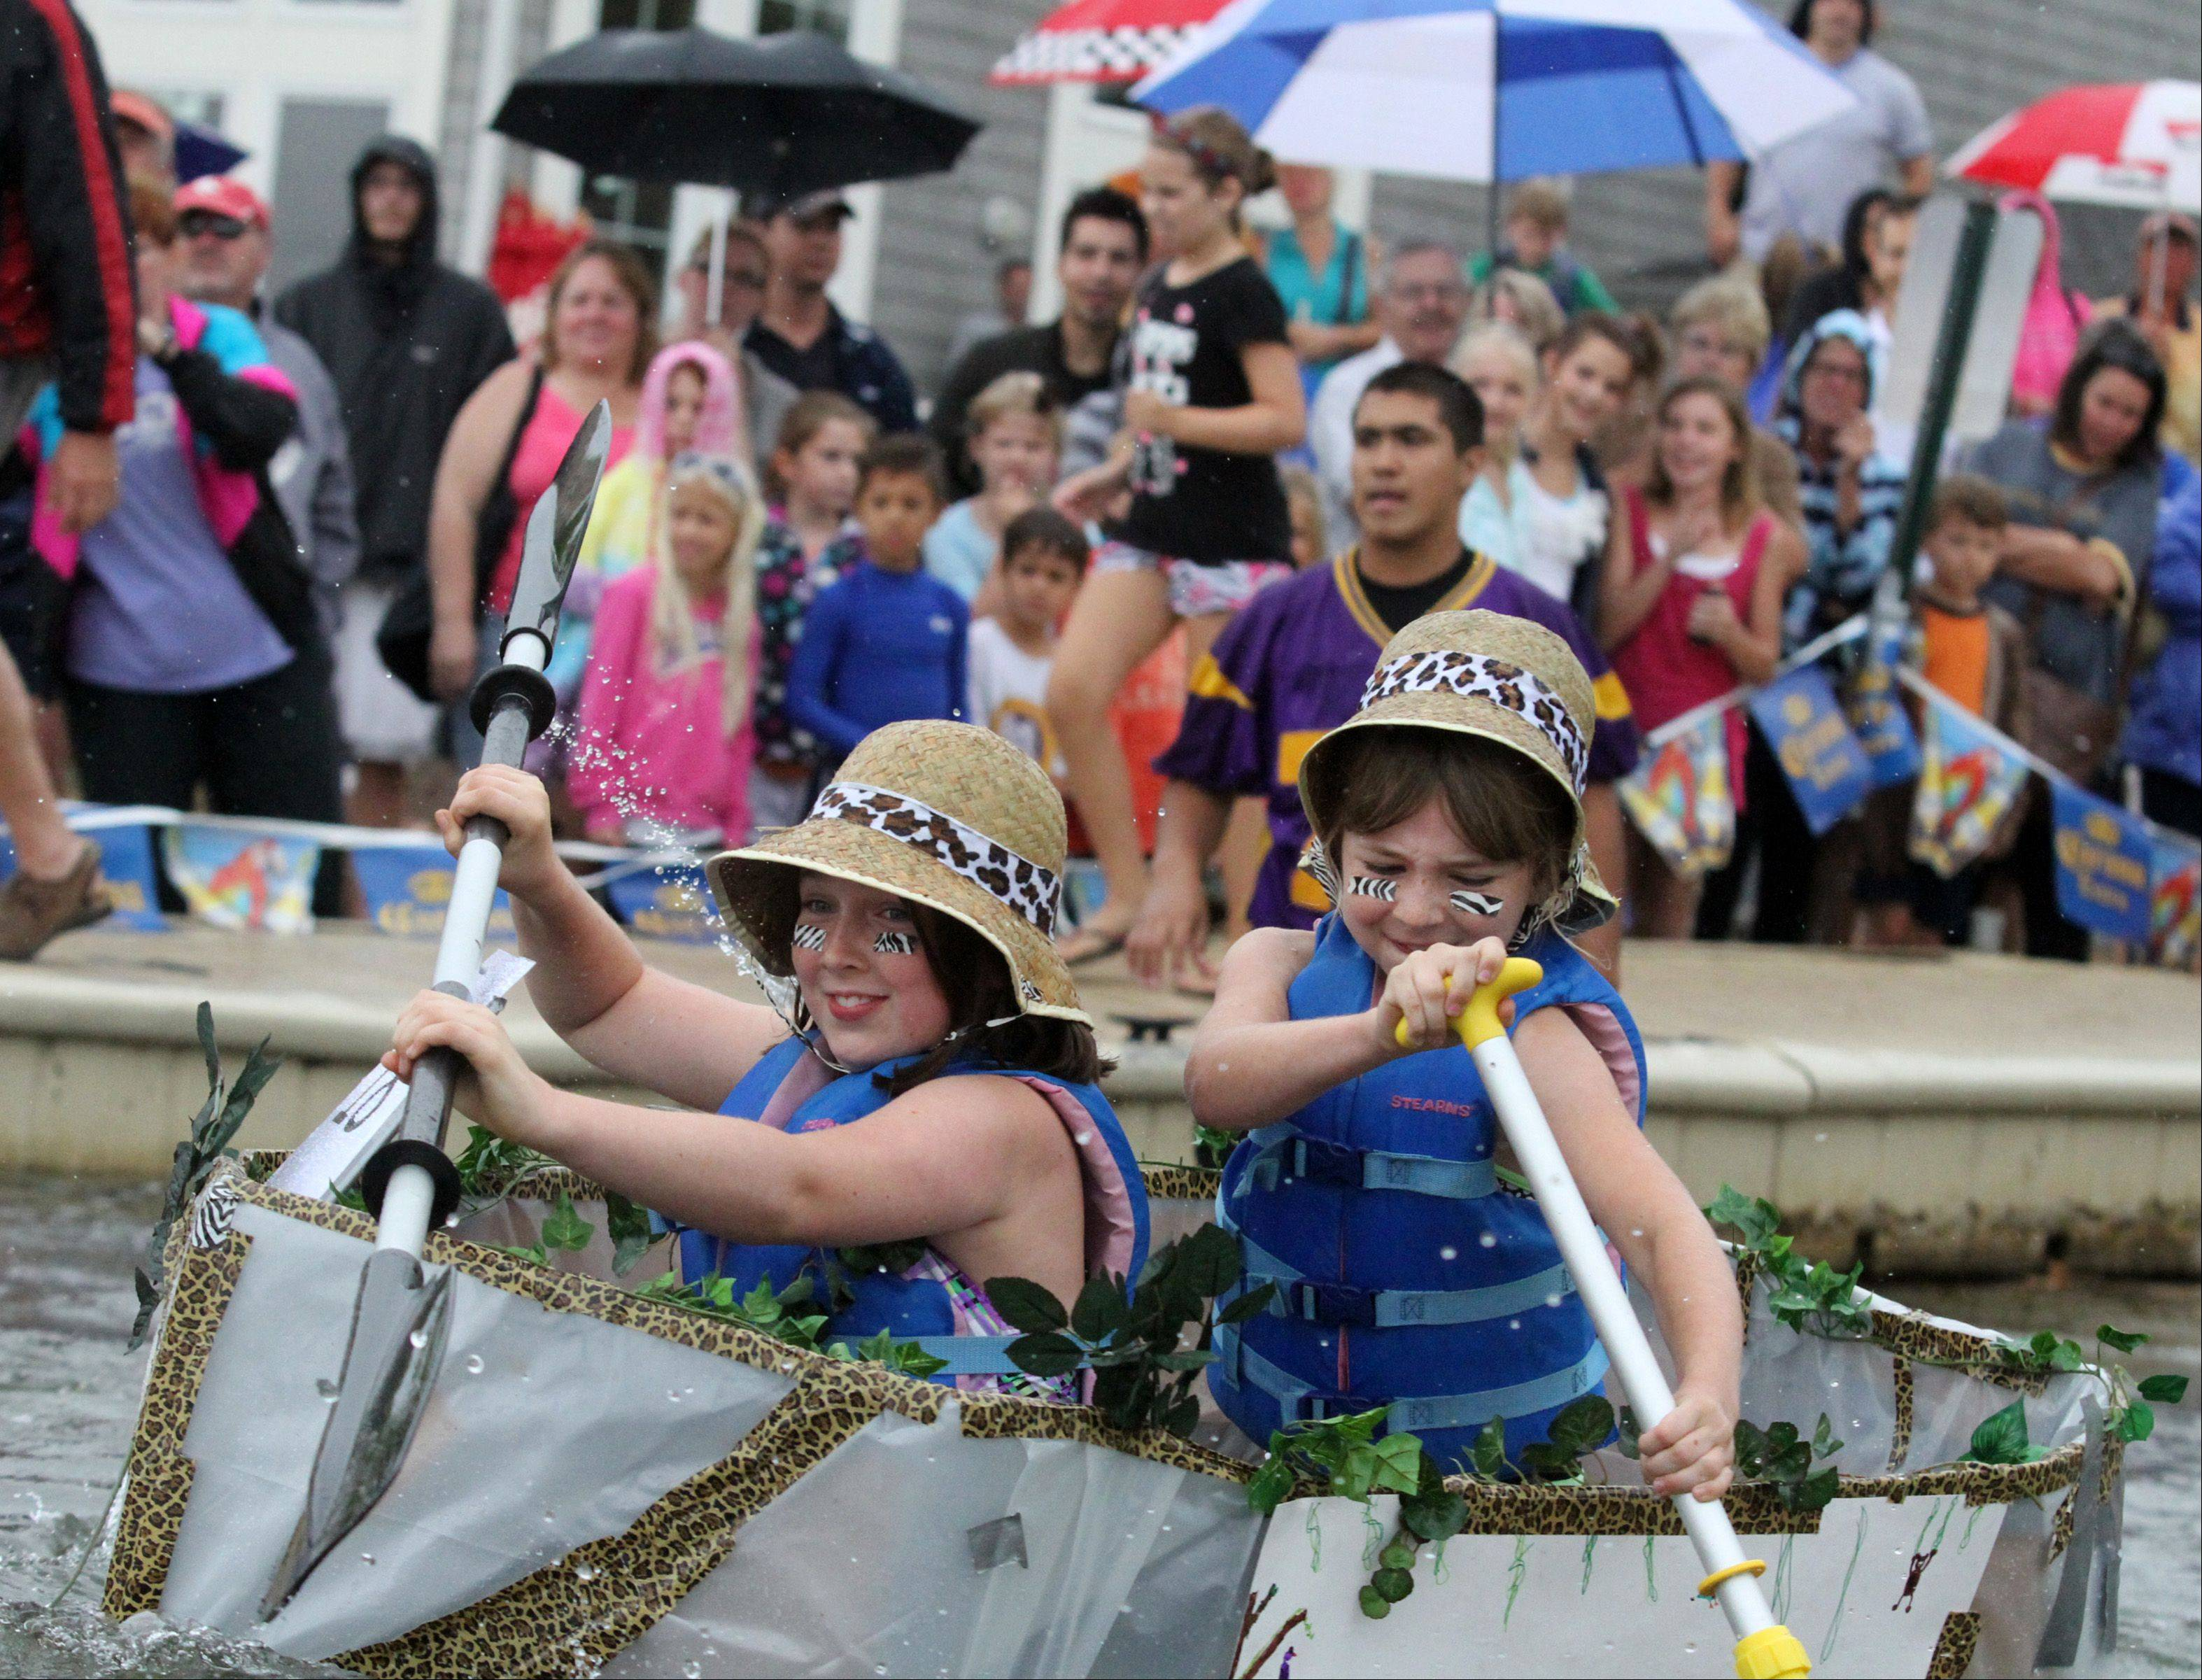 Olivia Holsen, 10, and her sister, Amanda, 8, both of Hawthorn Woods, paddle to victory Saturday at the 11th Annual Cardboard Boat Races at Lindy's Landing on Bangs Lake in Wauconda.